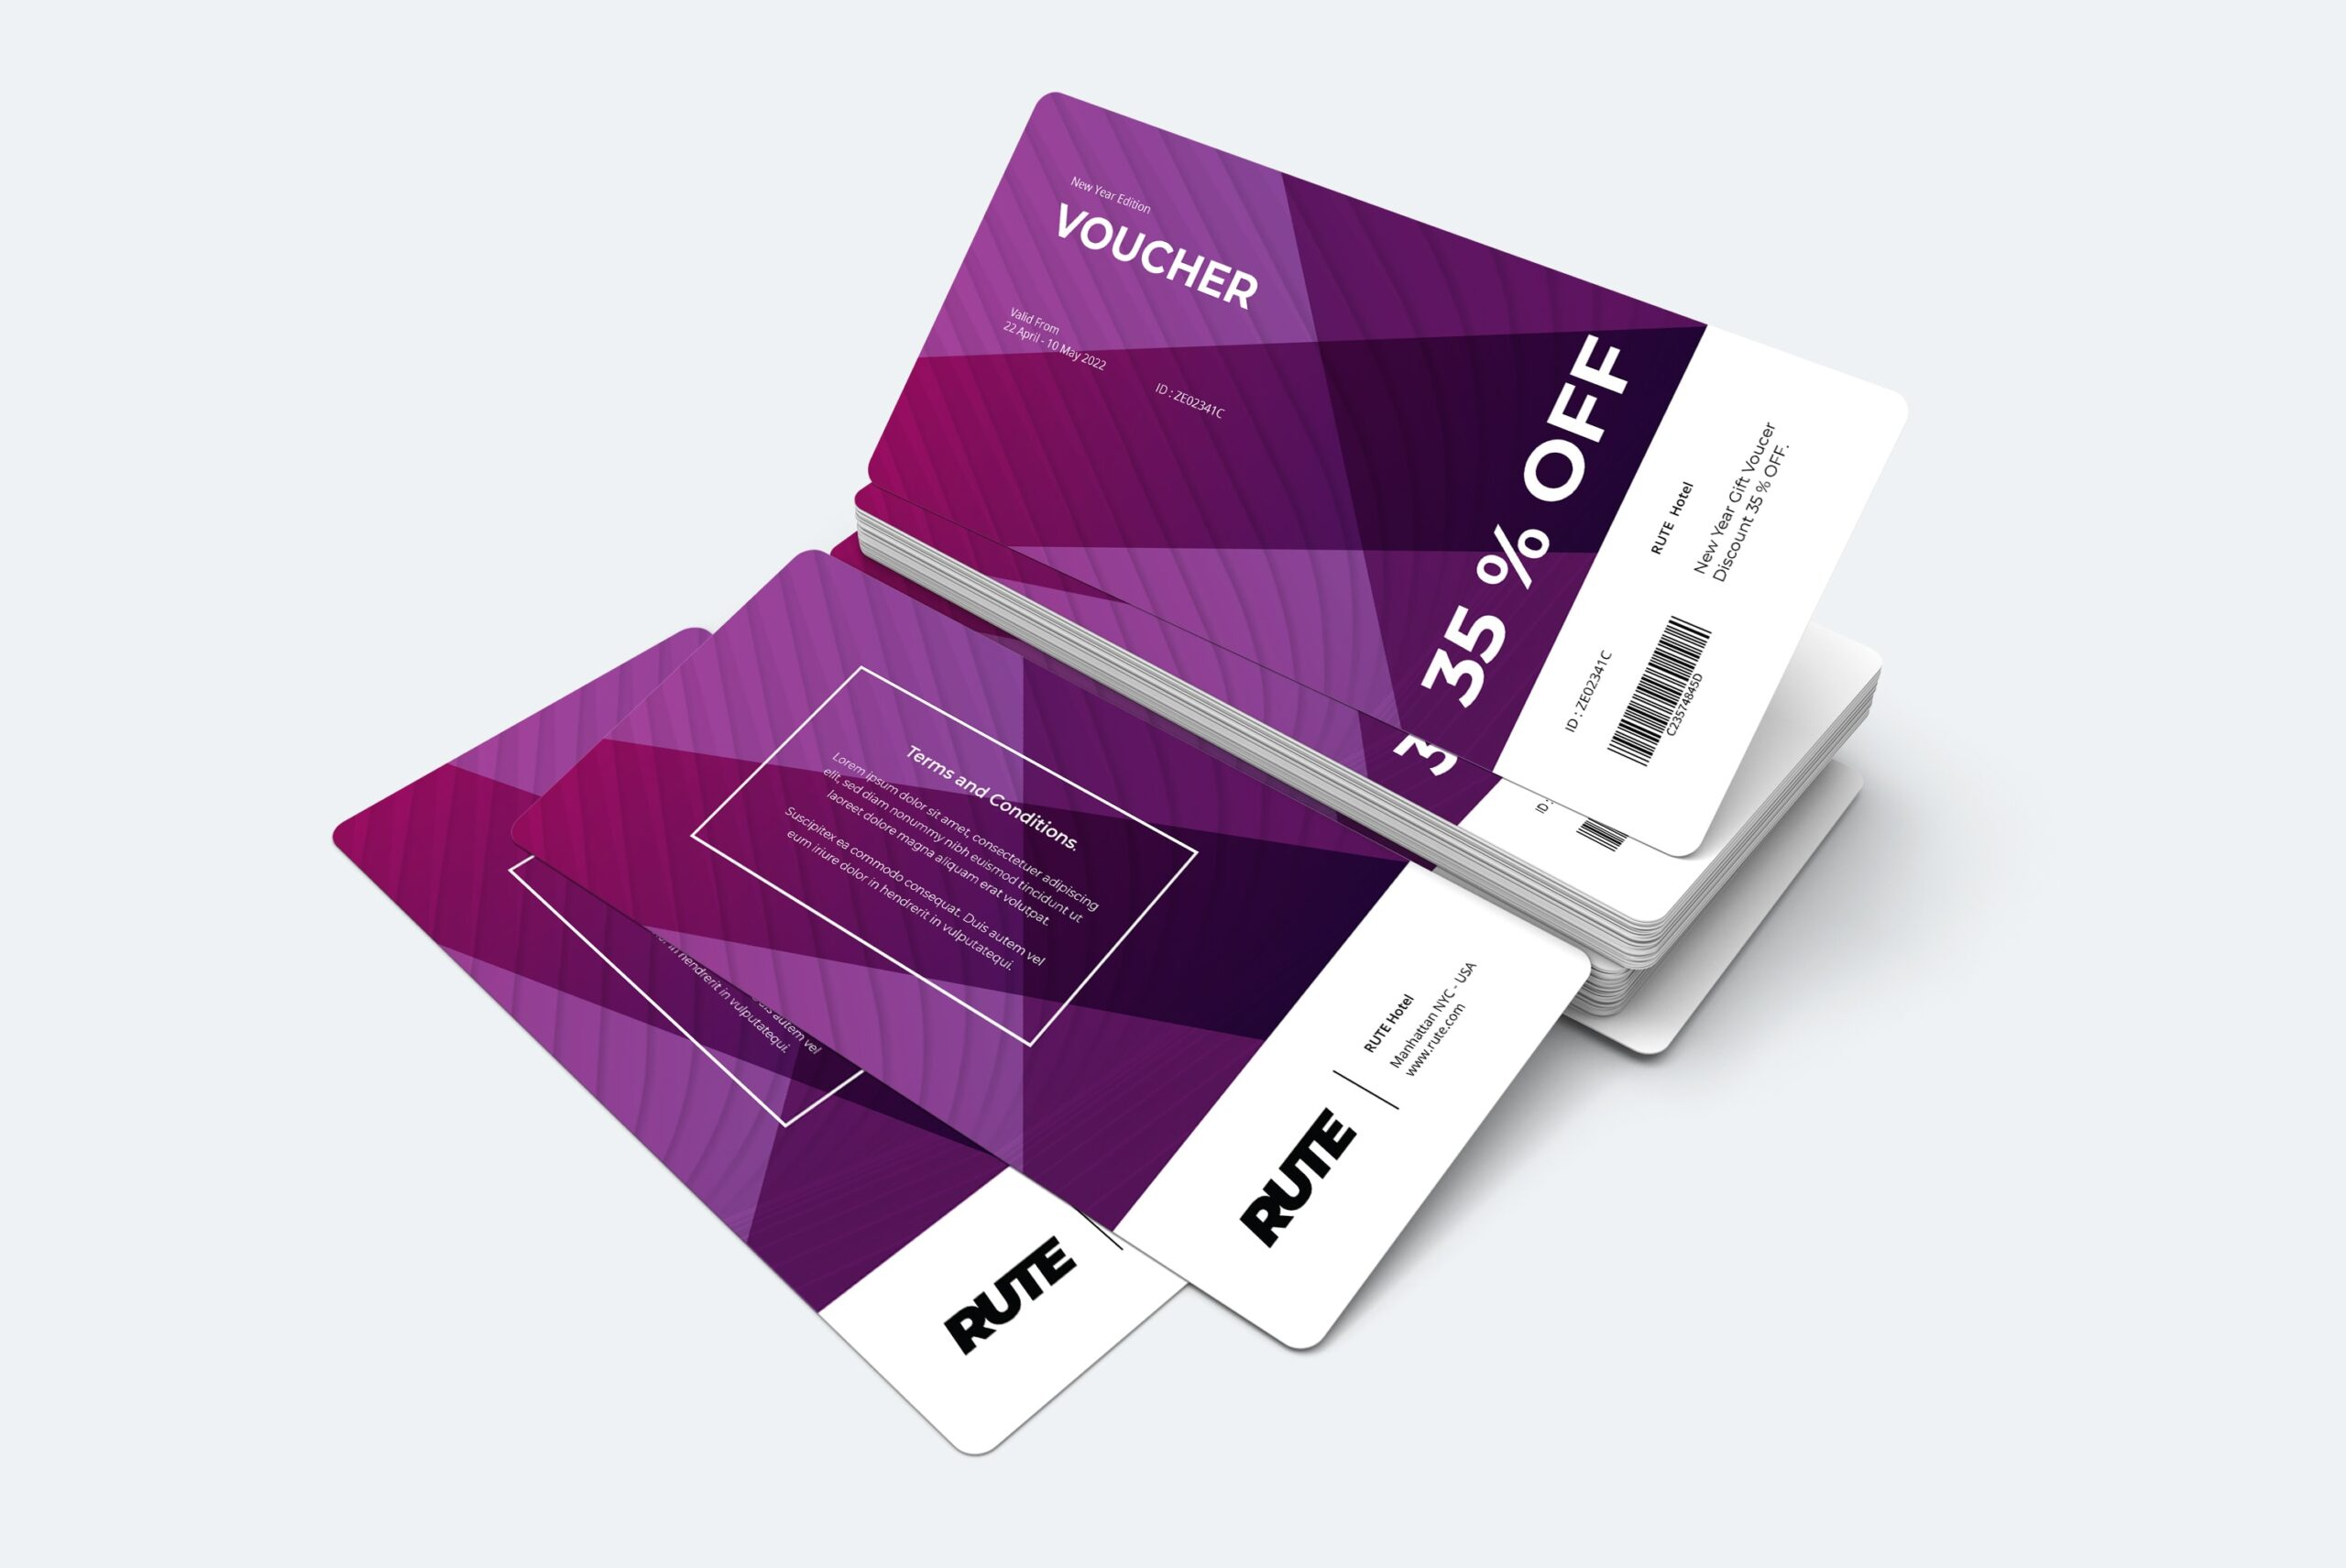 Gift Card Voucher - Hotel Promotion